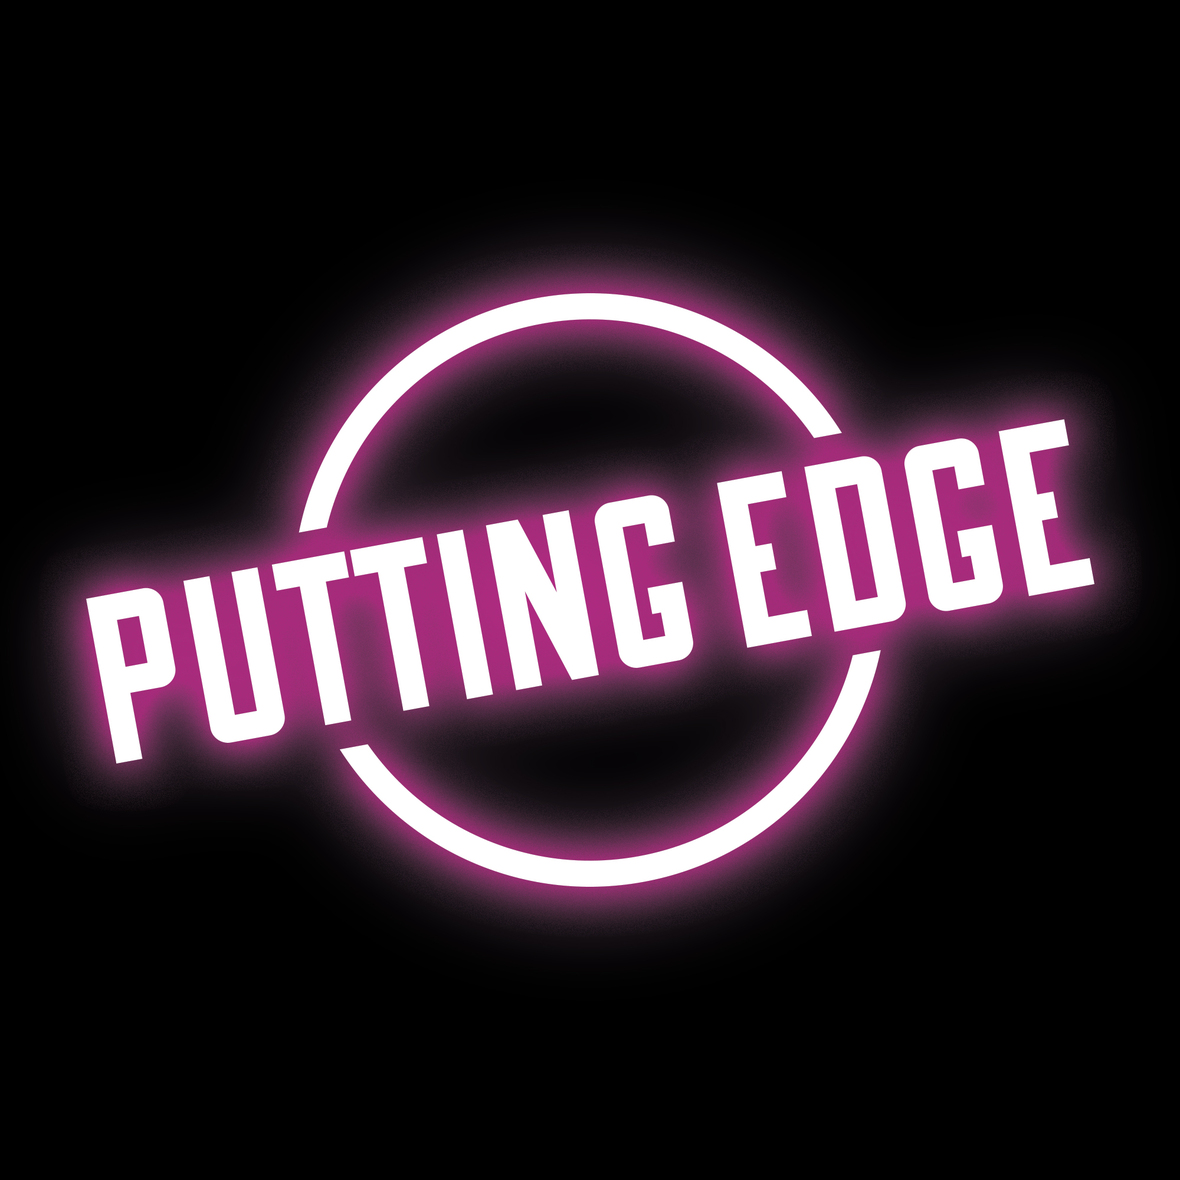 puttingedge logo pink glow  1